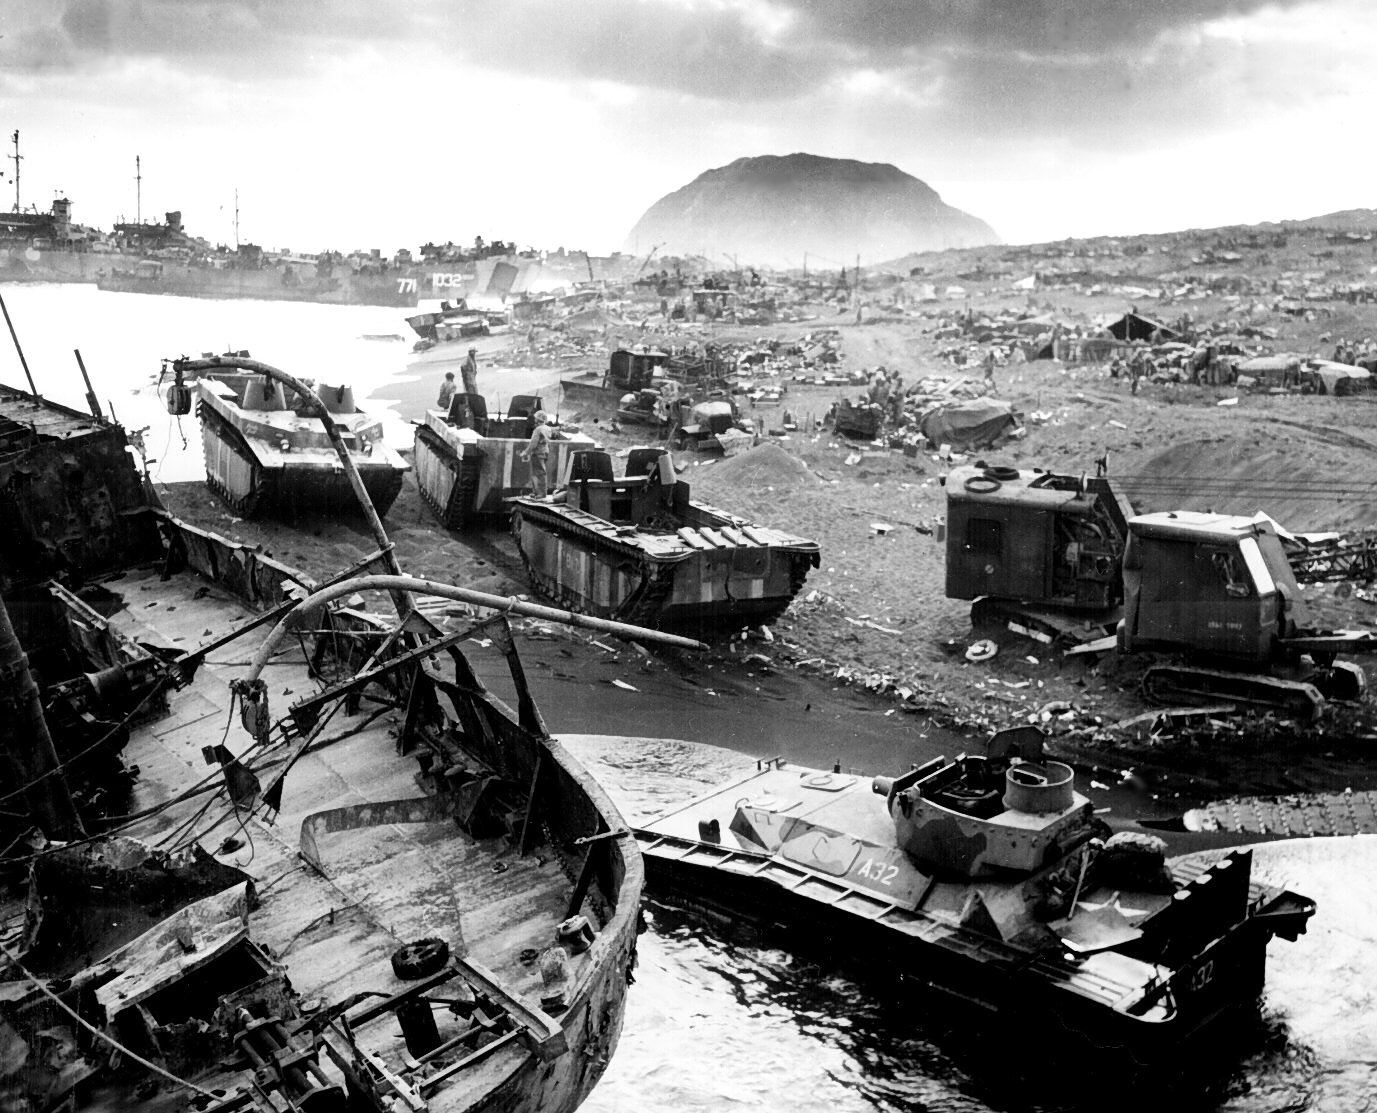 Smashed by Japanese mortar and shellfire, trapped by Iwo's treacherous black-ash sands, amtracs and other vehicles of war lay knocked out on the black sands of the volcanic fortress. c. February/March 1945